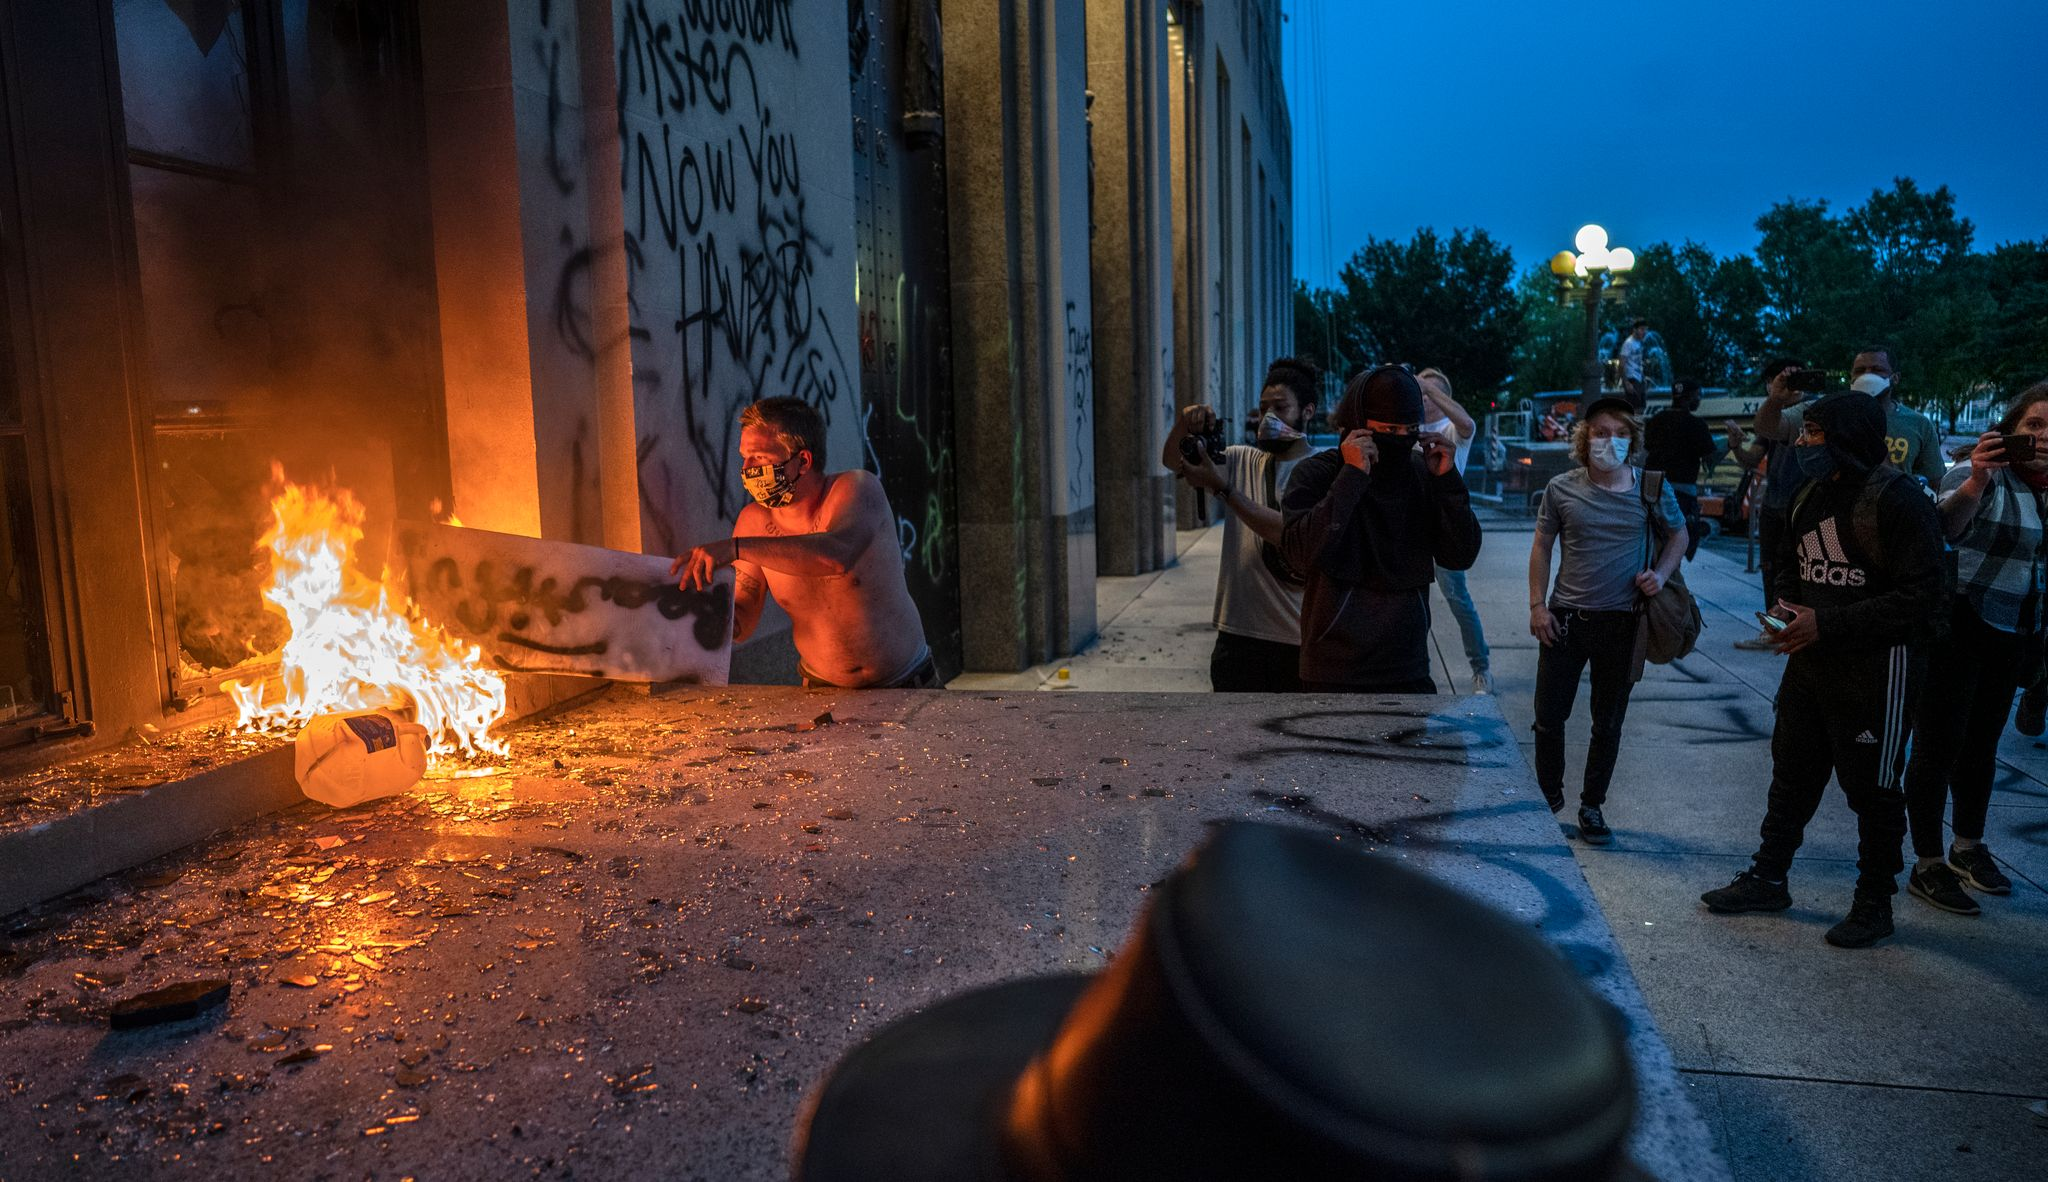 Nashville, Tenn., May 30 - A protestor sets fire to Historic Metro Nashville Courthouse while bystanders ignore him. (Photo: John Partipilo)